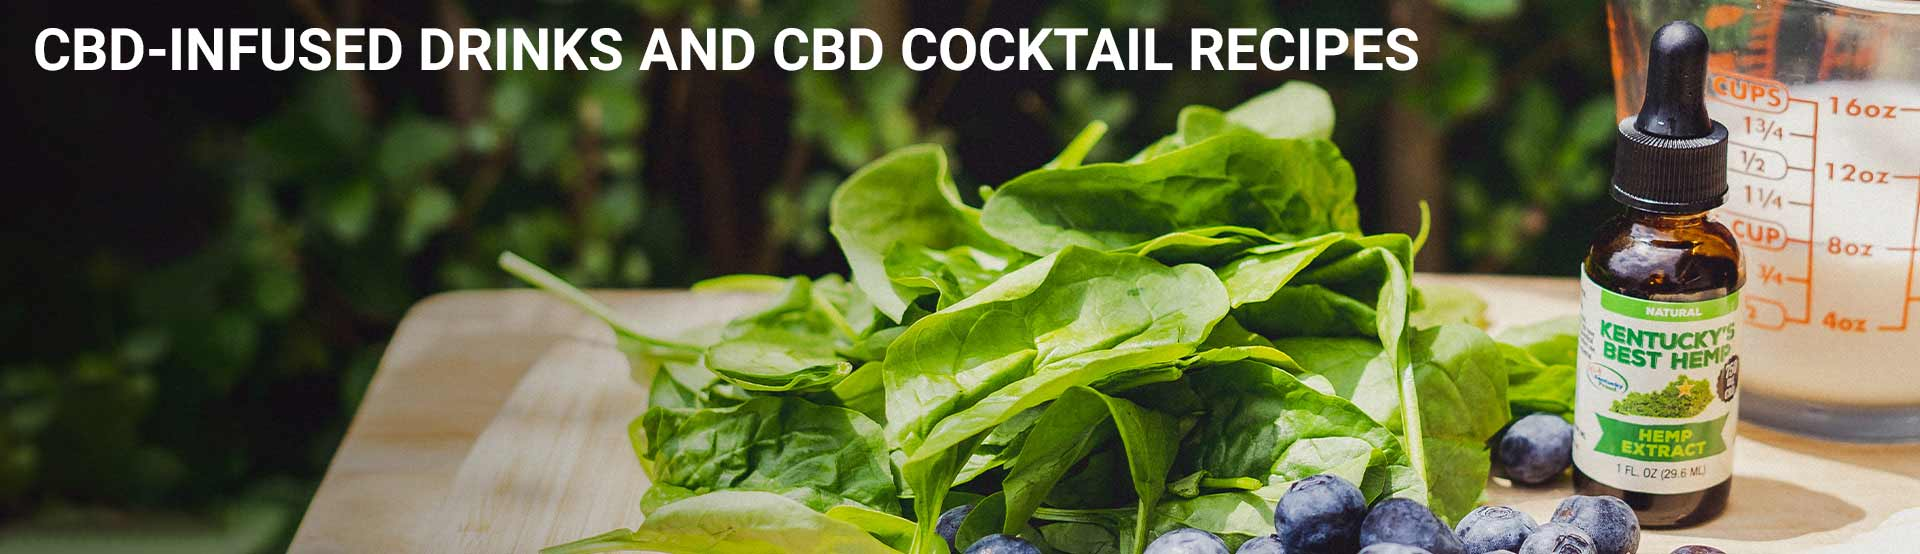 CBD-Infused Drinks and CBD Cocktail Recipes - Hero Image